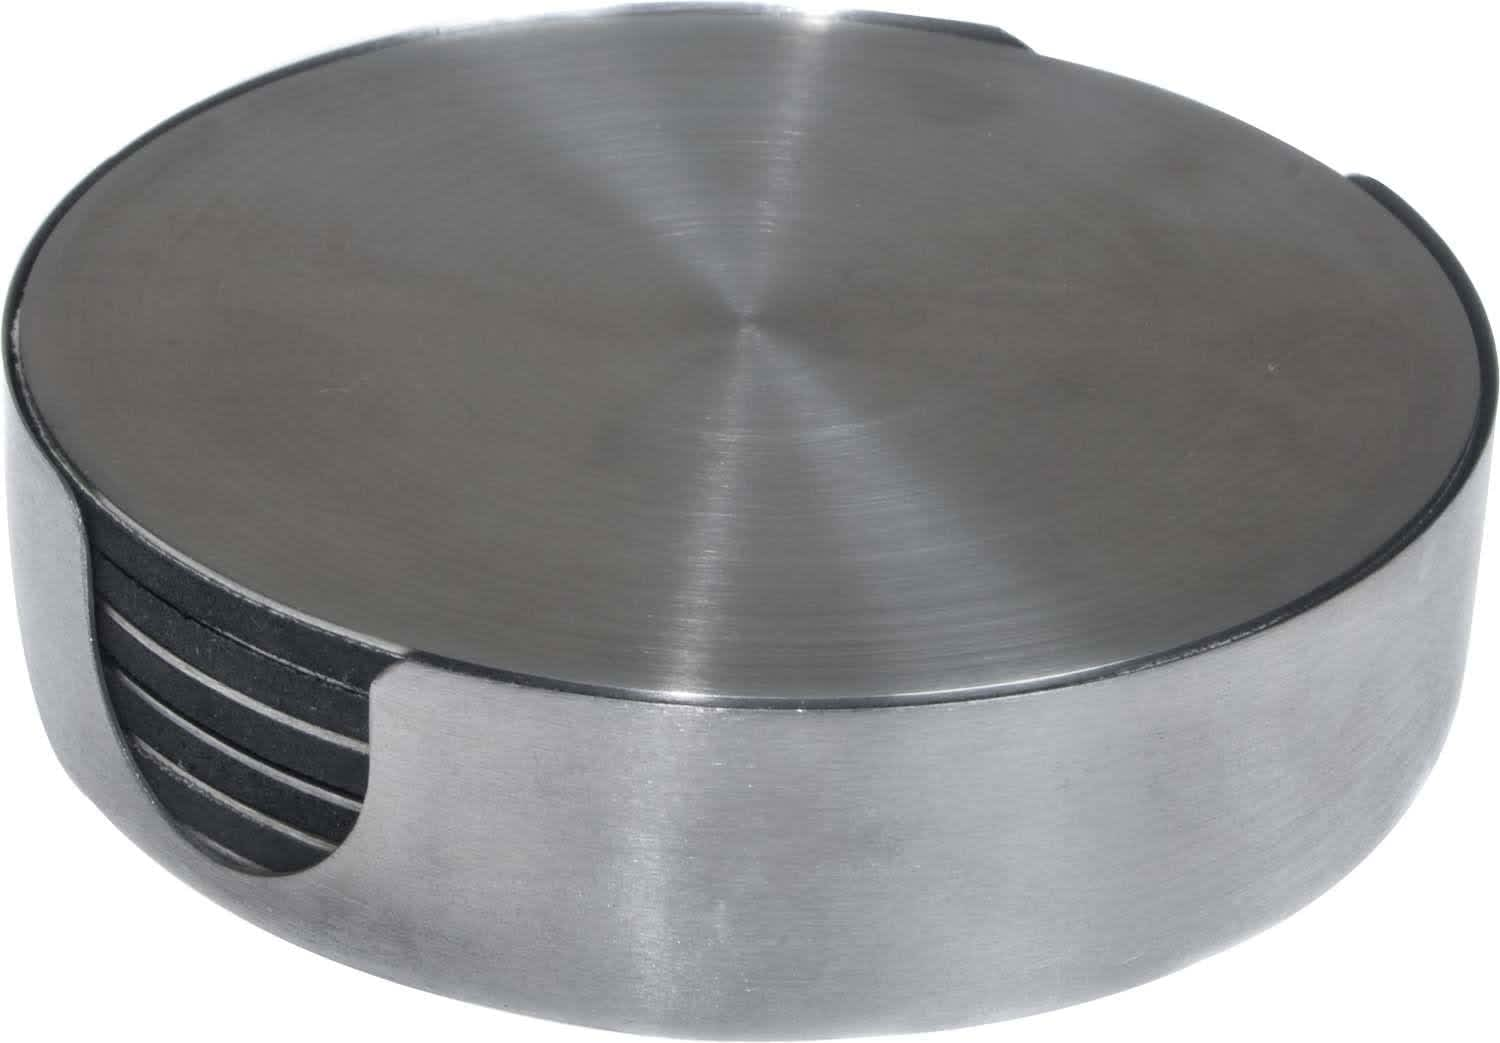 Thirstystone Stainless Steel Coasters 6-Pack